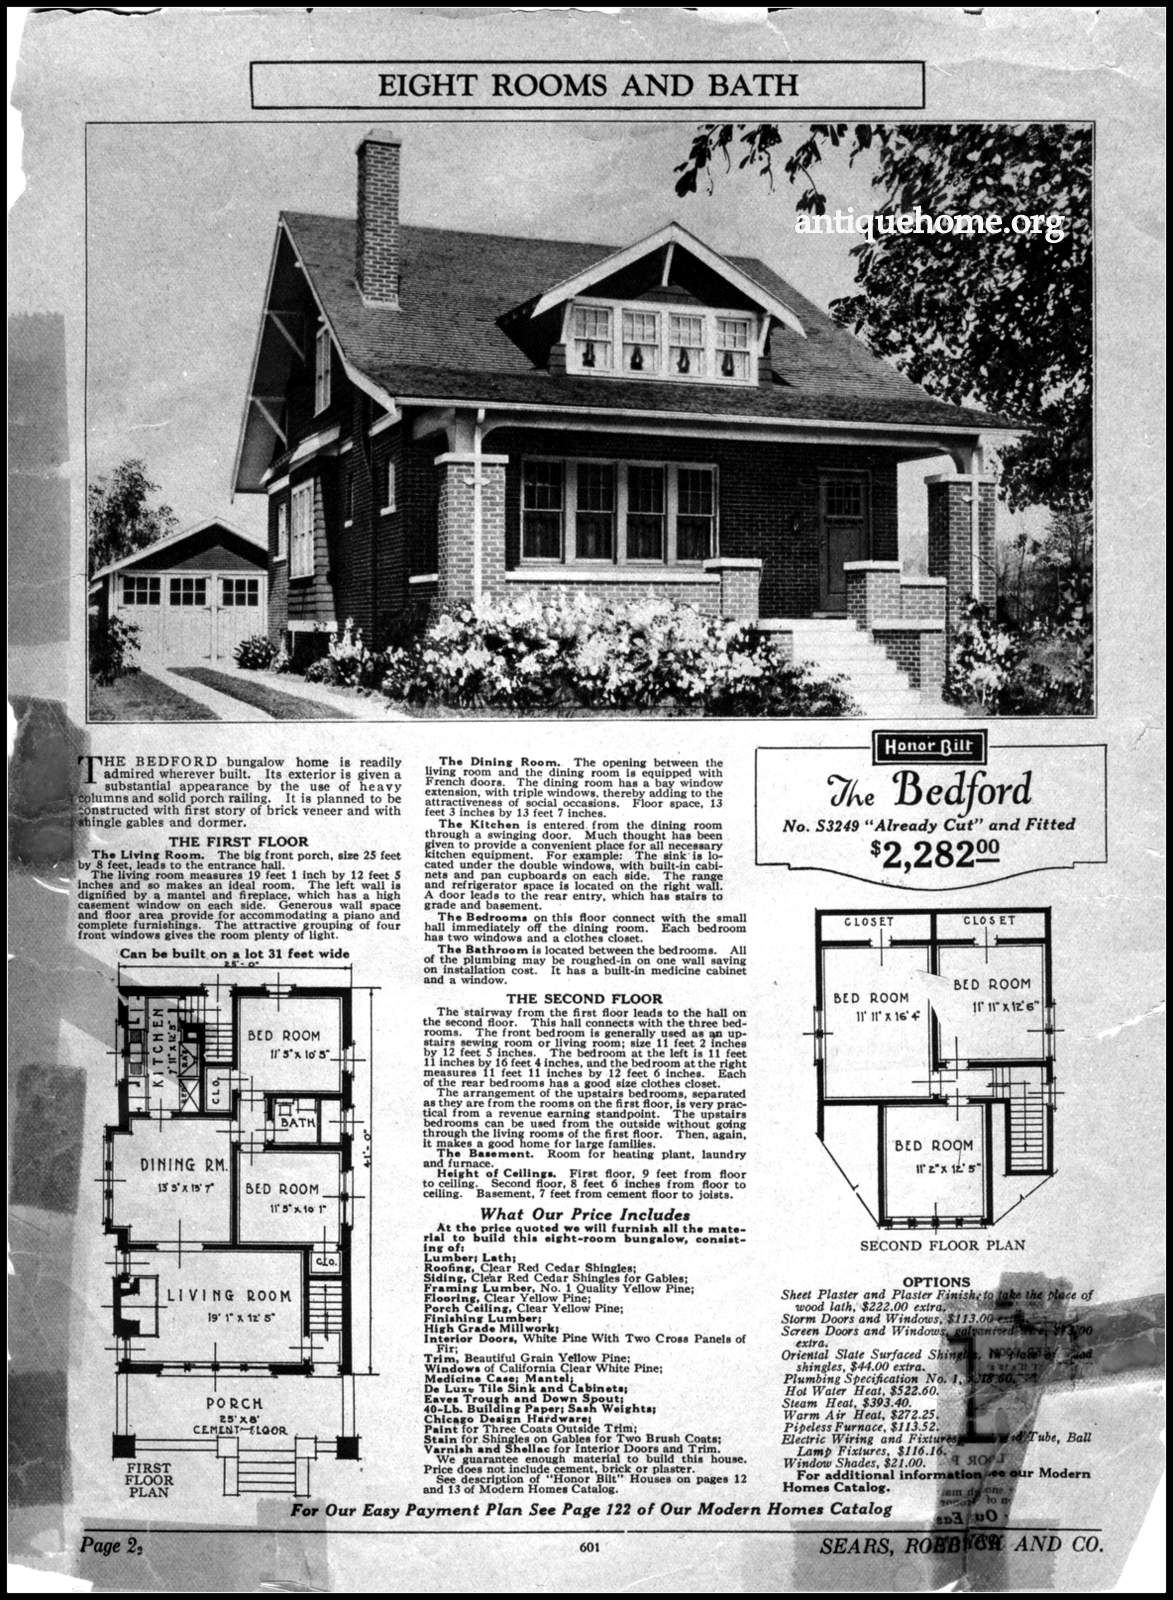 sears roebuck kit house the bedford 1926 sears special supplement vintage house plans. Black Bedroom Furniture Sets. Home Design Ideas